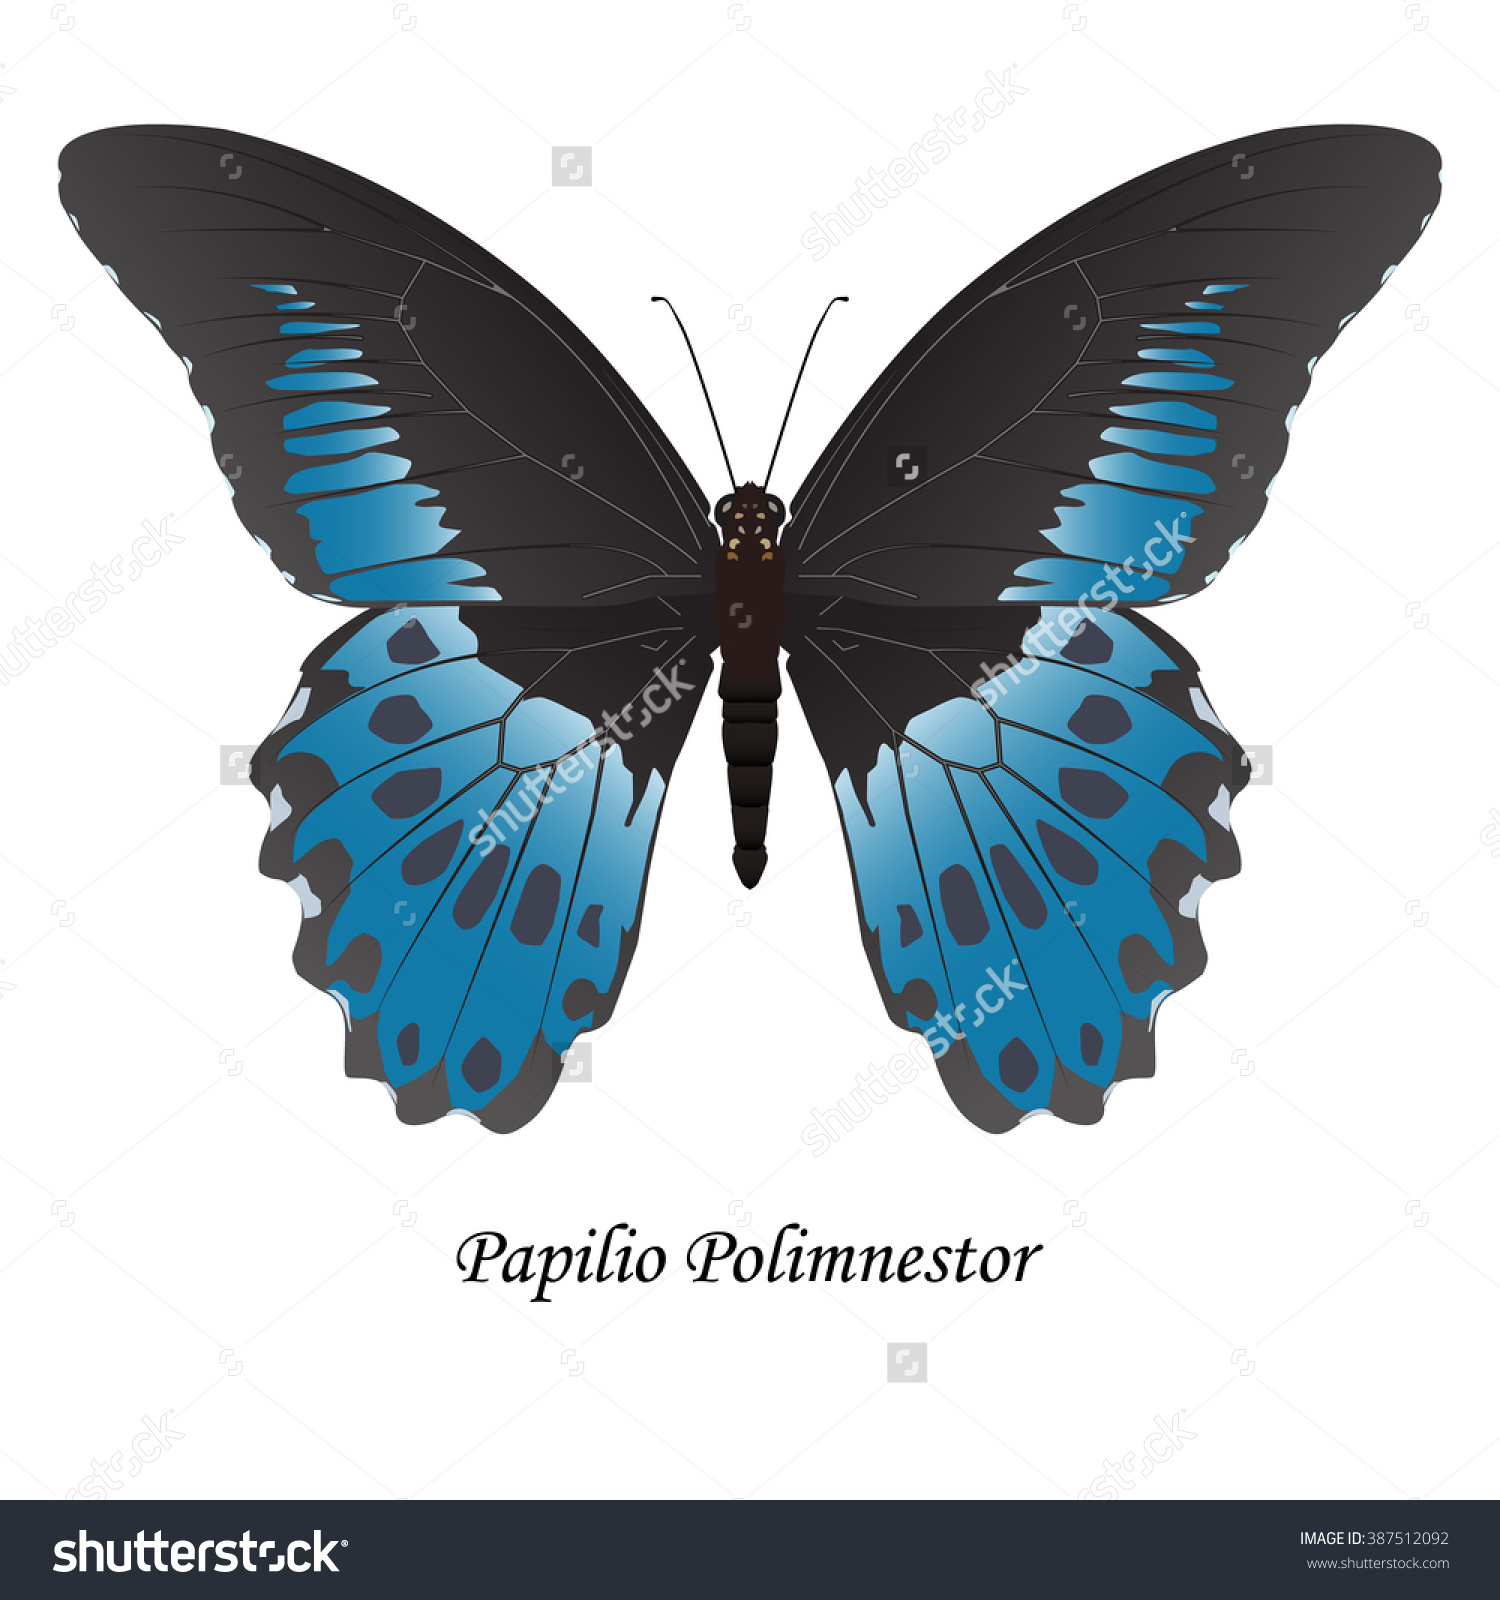 Indian Swallowtail Butterfly Papilio Polymnestor Illustration.